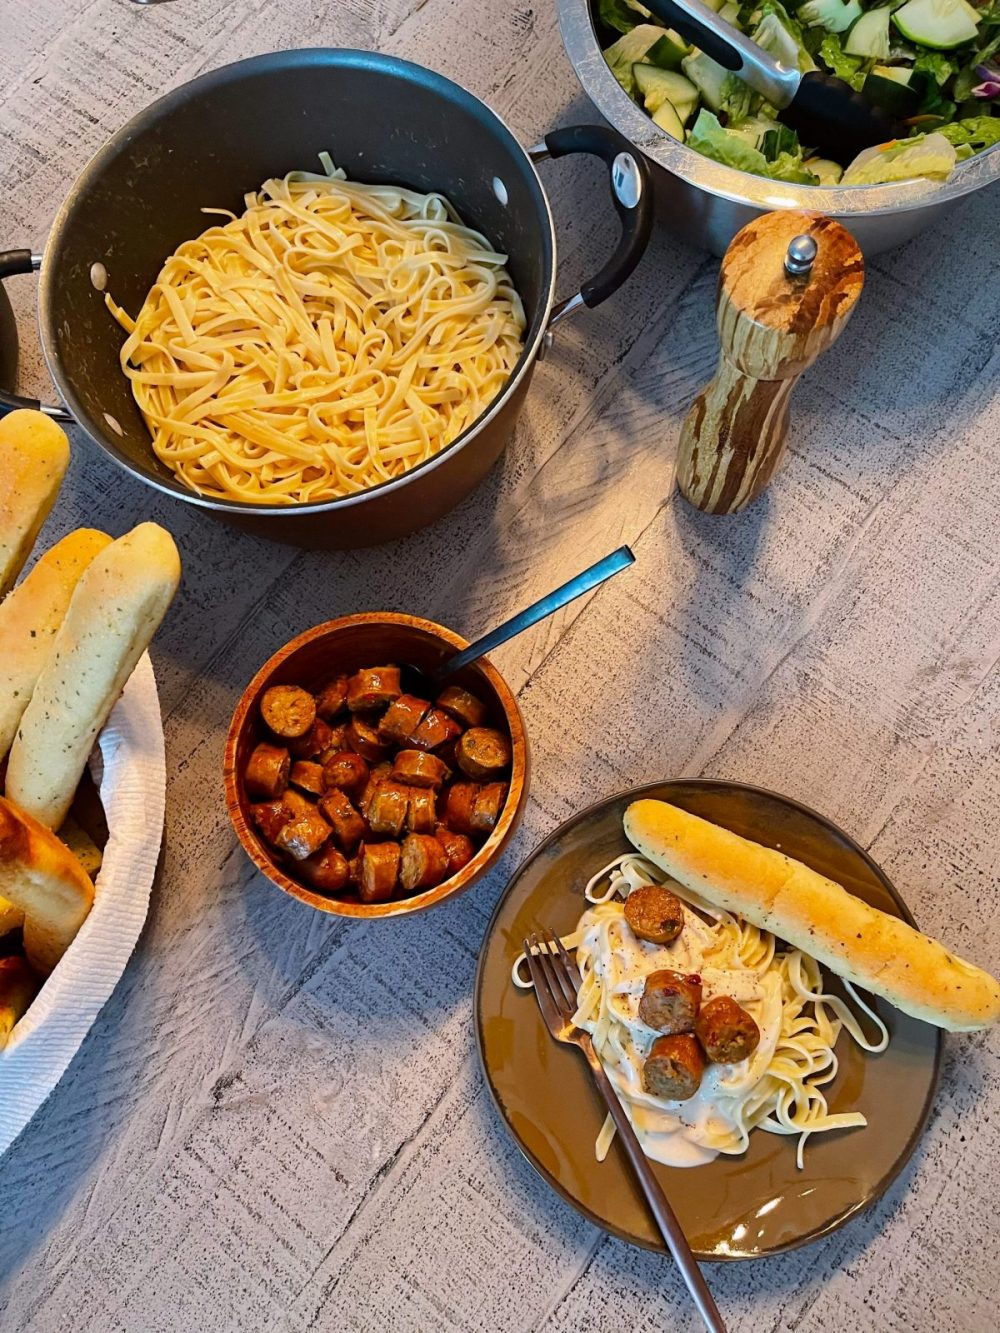 Omaha Steaks Meals featured by top FL lifestyle blogger, Tabitha Blue of Fresh Mommy Blog. - Italian Sausage Alfredo   Omaha Steaks Meals by popular Florida lifestyle blog, Fresh Mommy Blog: image of cut up sausage next to fettuccine noodles and a bowl of salad.